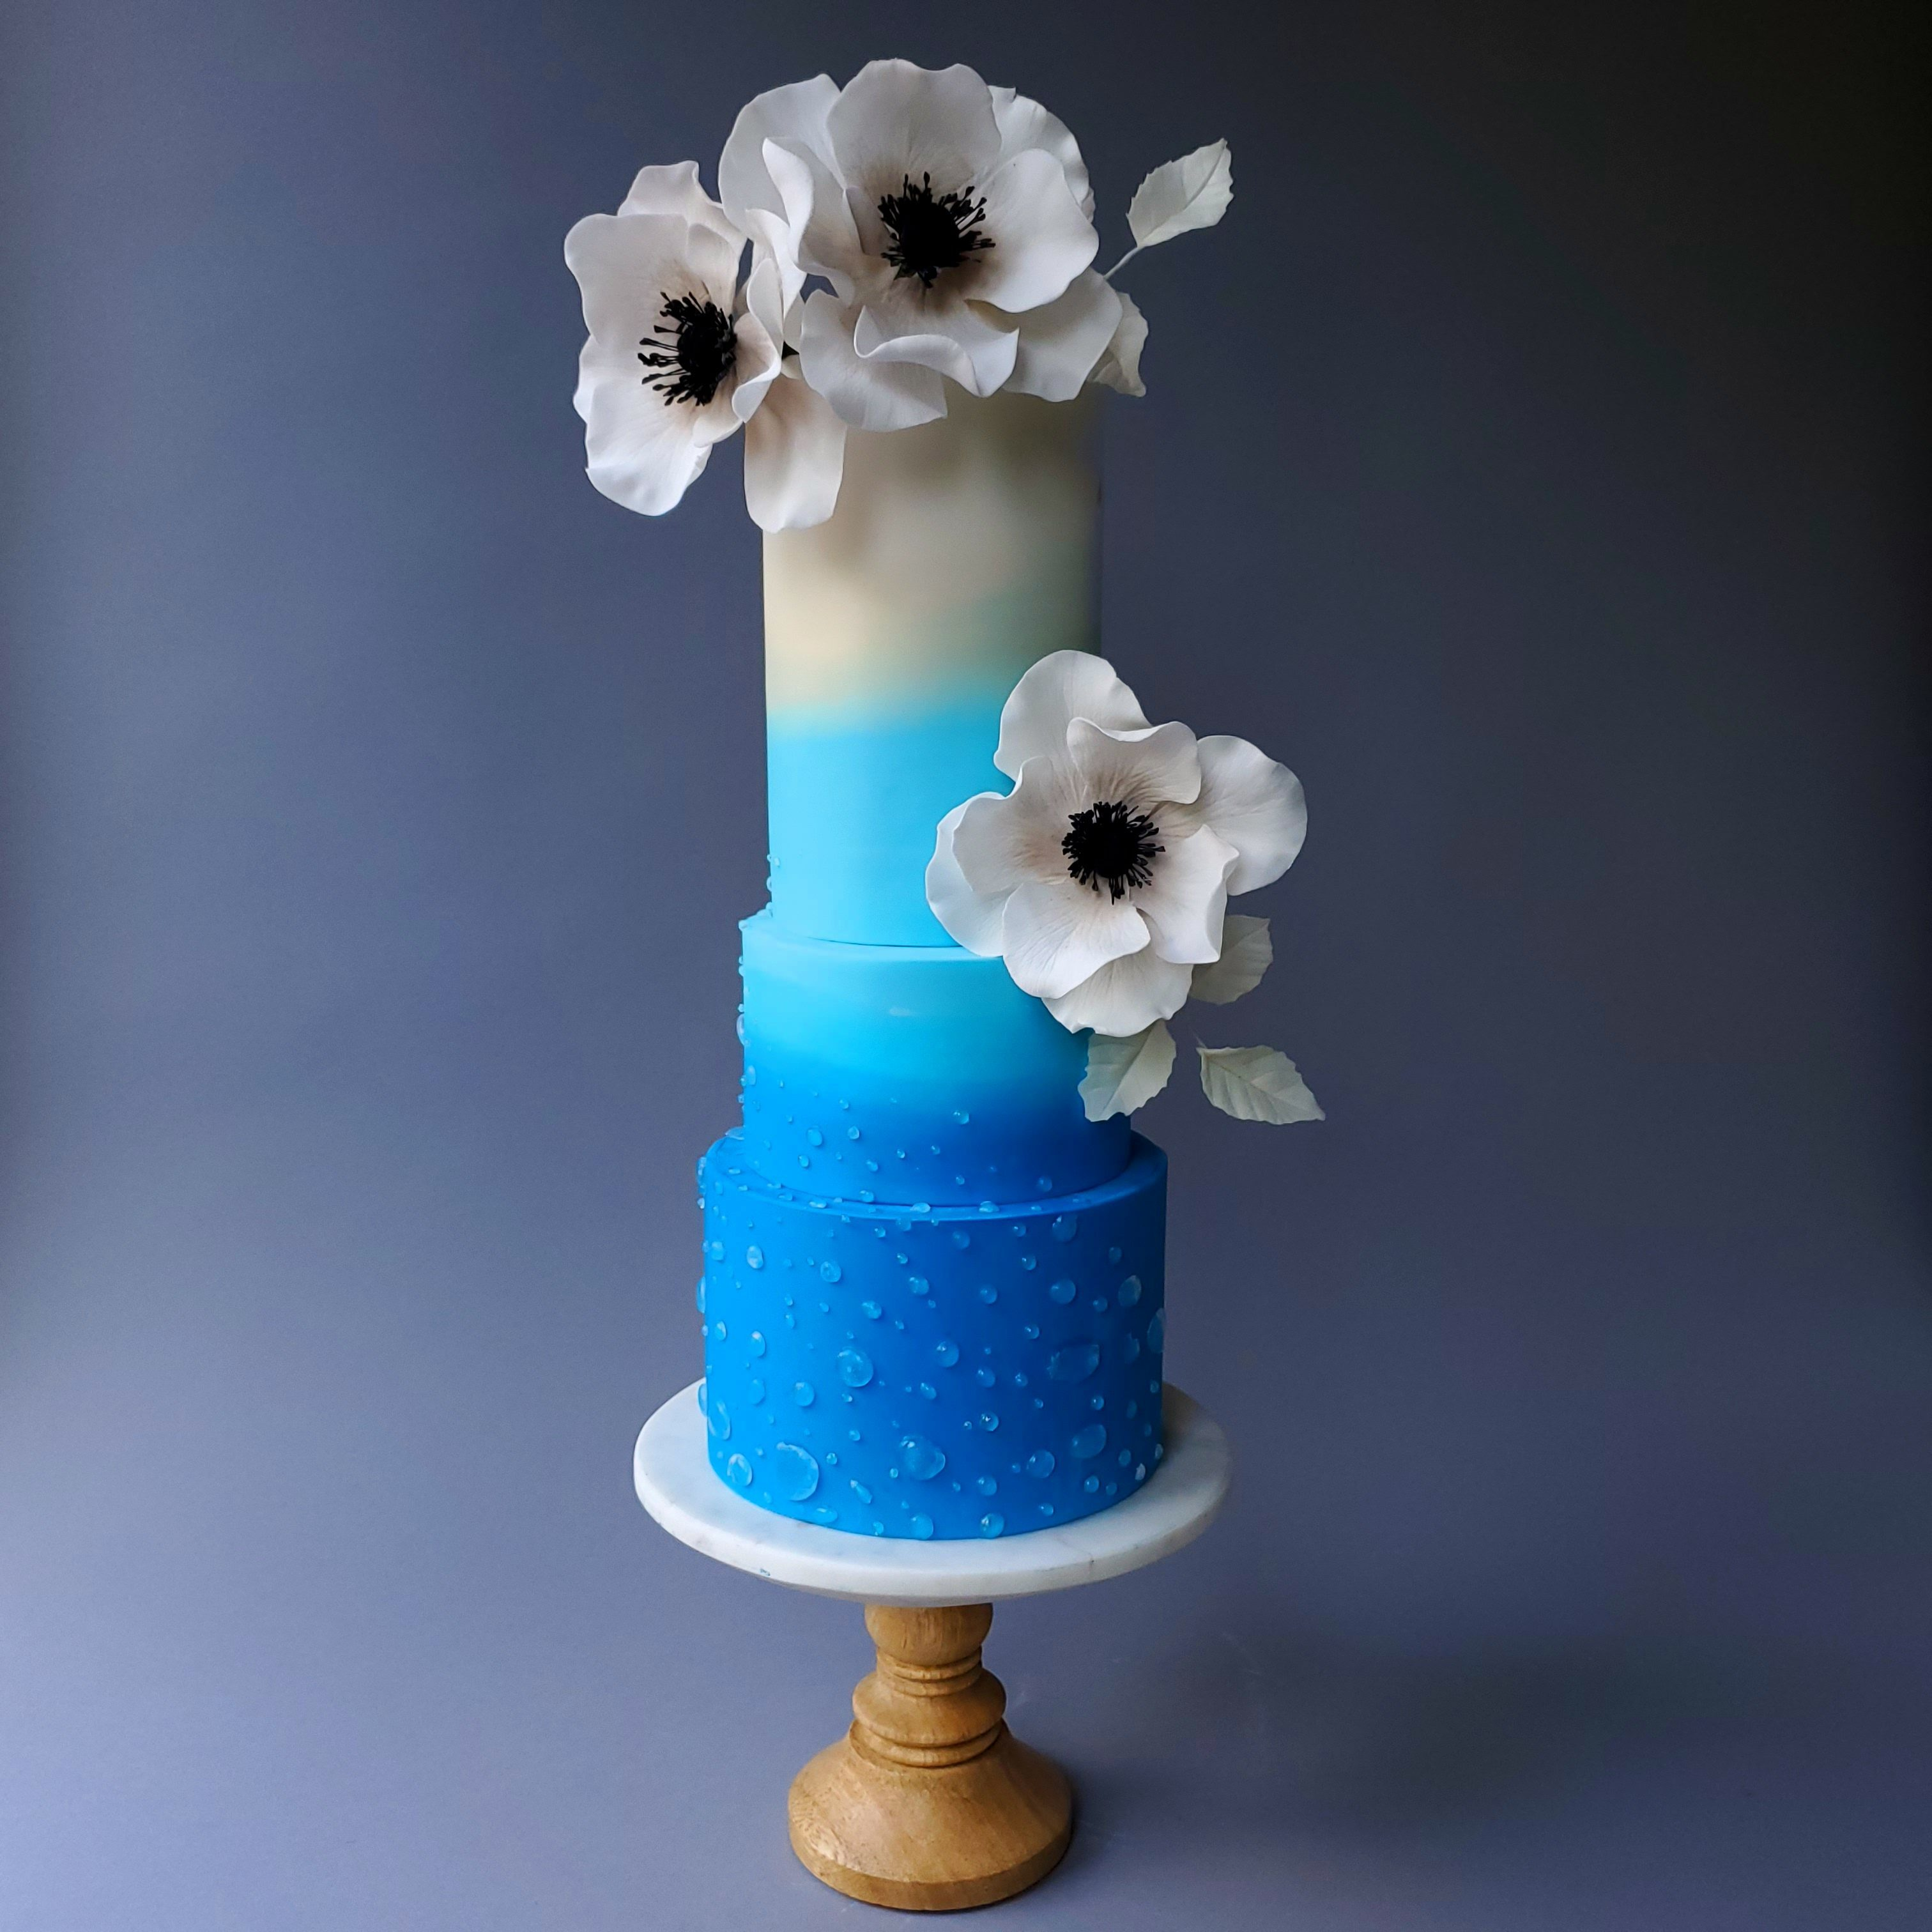 Blue on blue fondant wedding cake with white sugar flowers